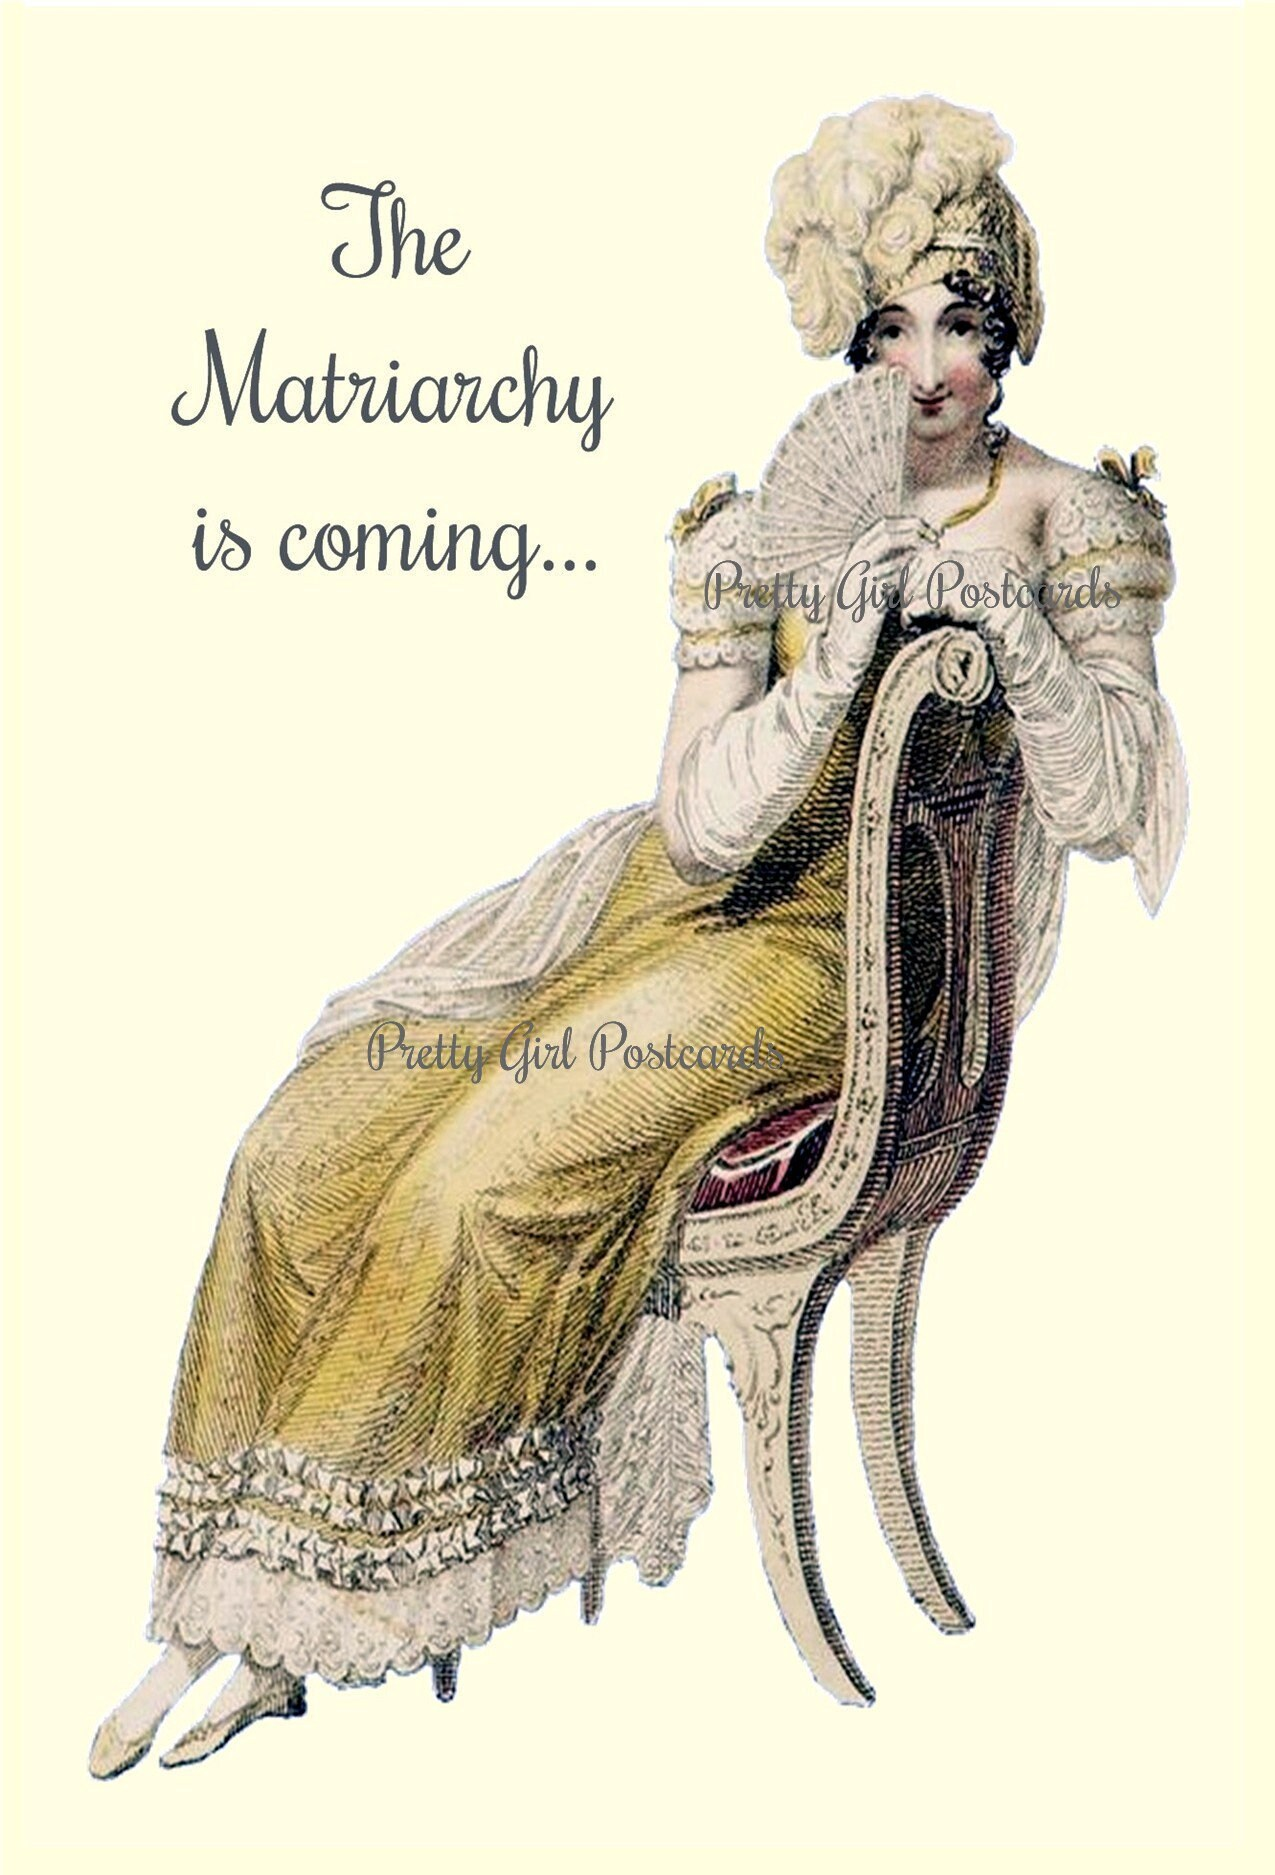 Marie antoinette postcard witty political quote greeting card the marie antoinette postcard witty political quote greeting card the matriarchy is coming funny sayings but true pretty girl postcards m4hsunfo